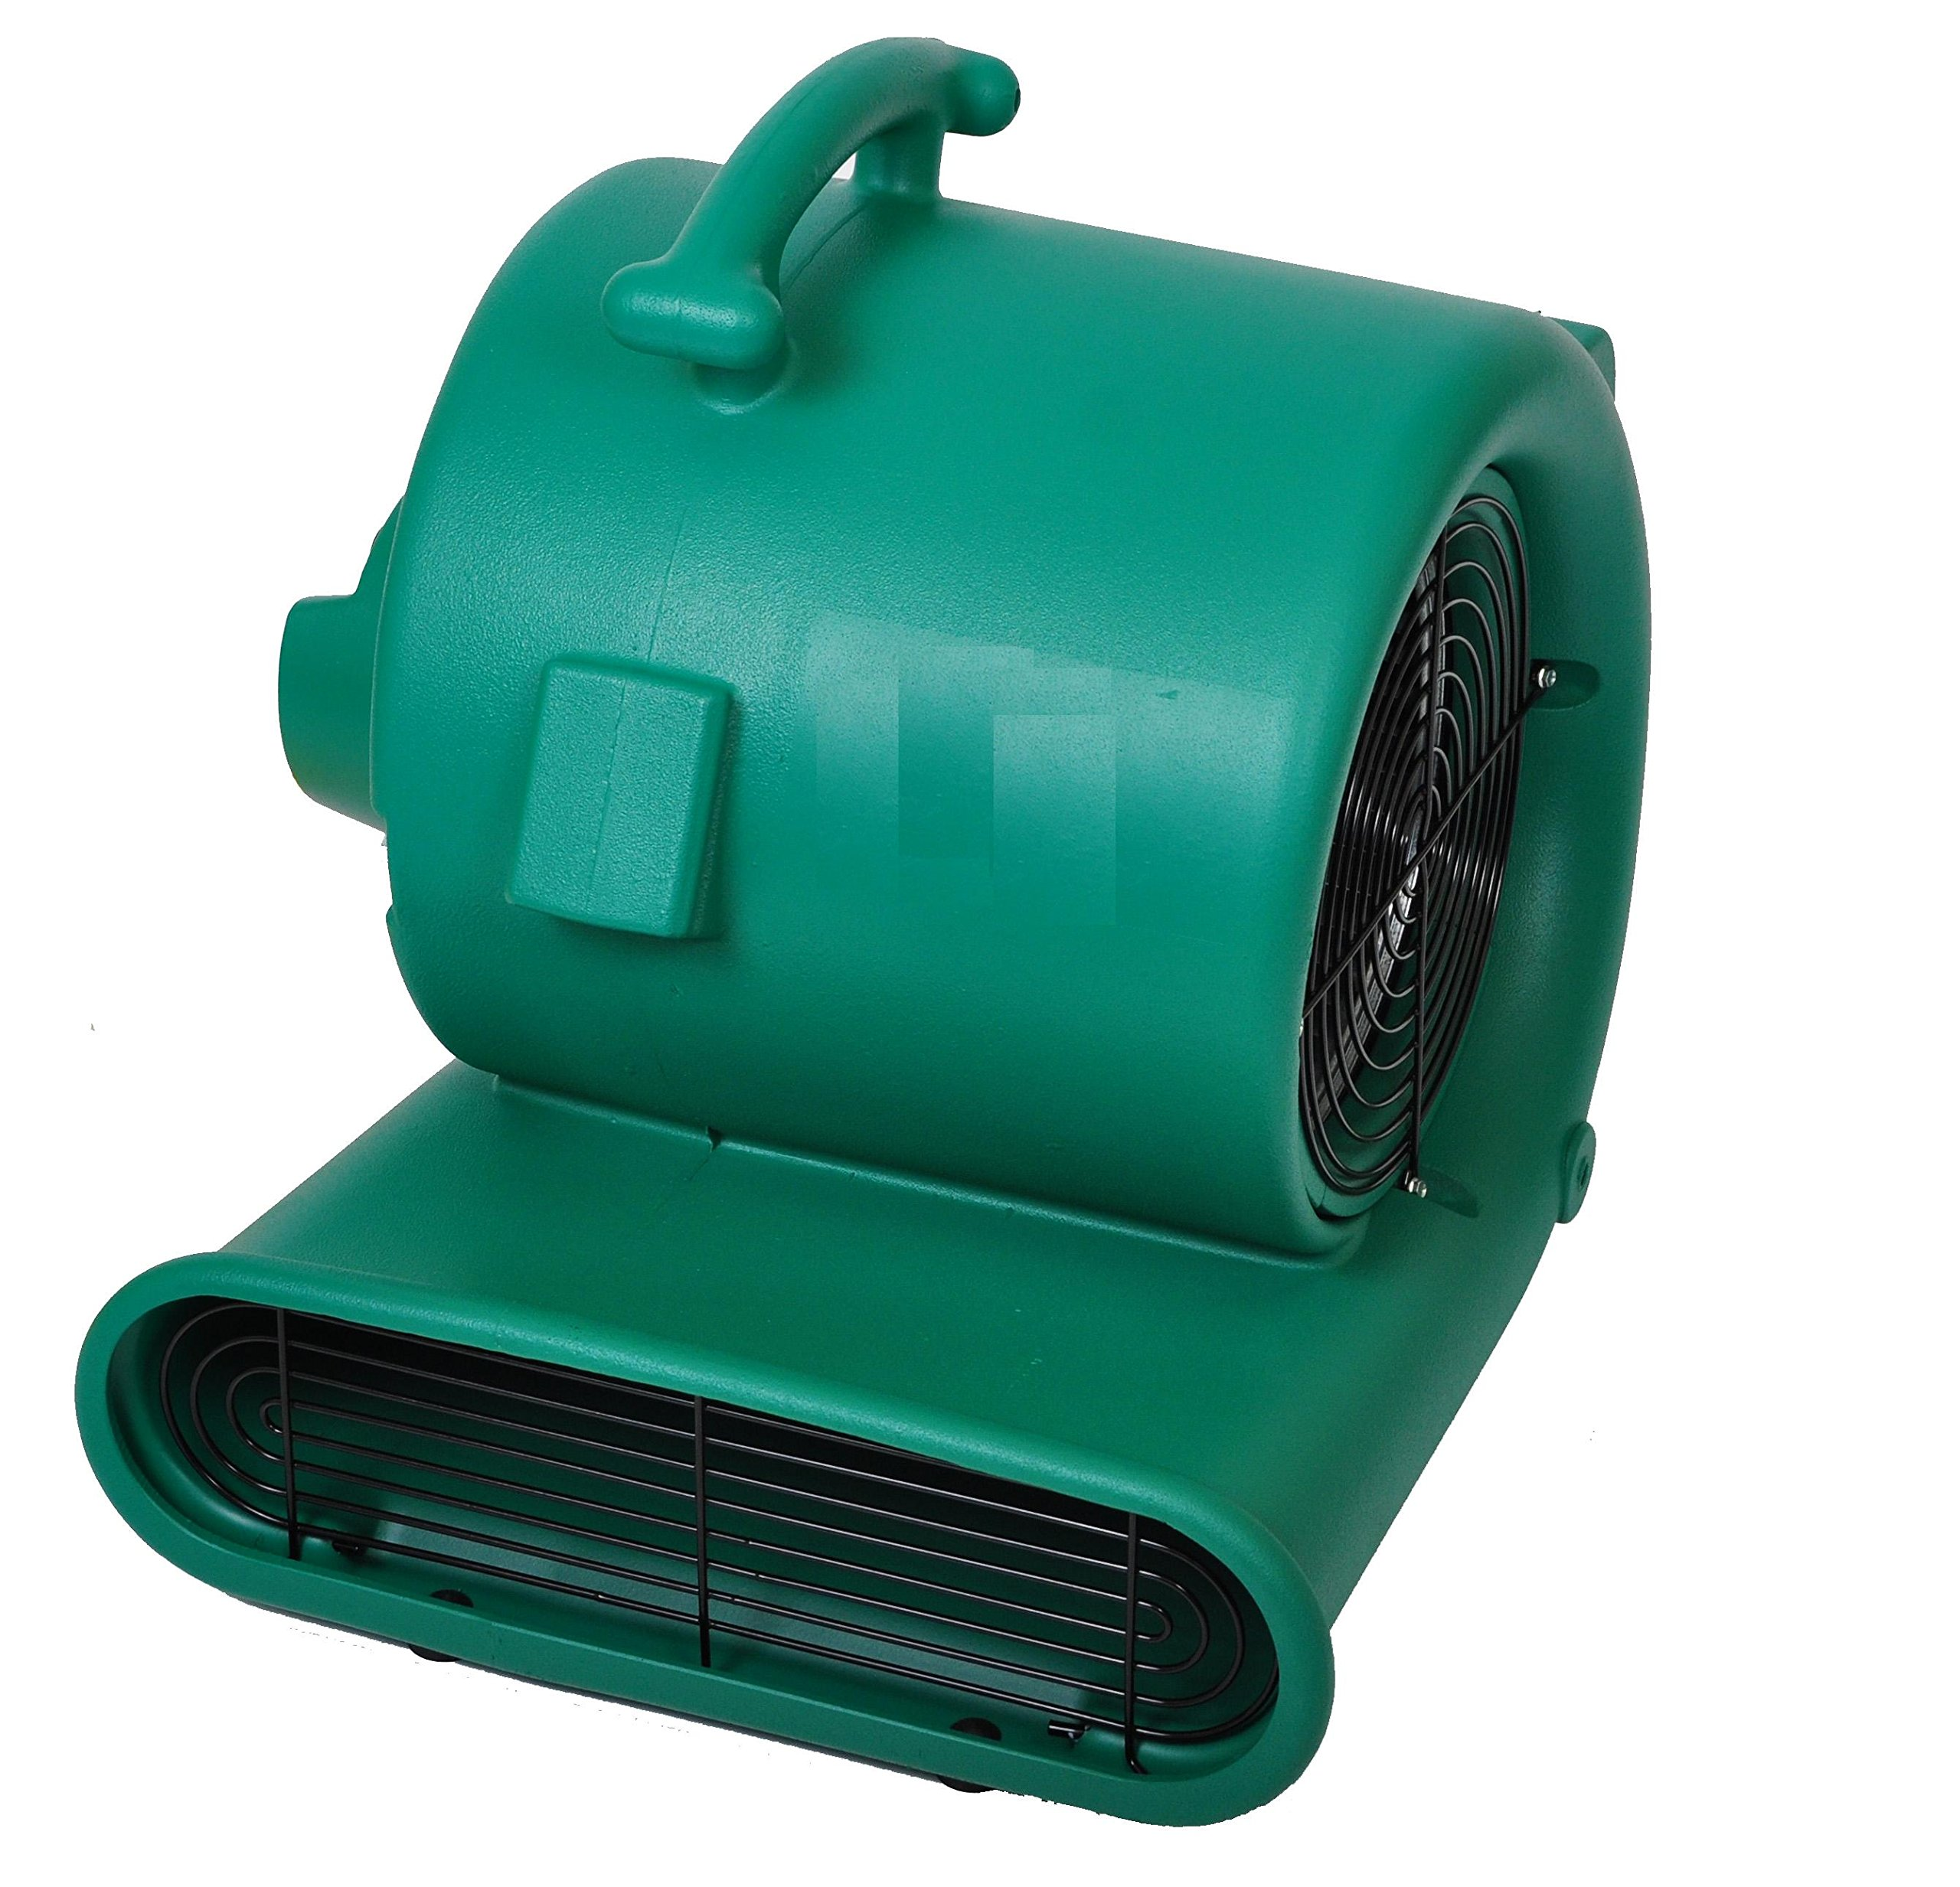 Bissell Commercial BGAM3000 Air Mover